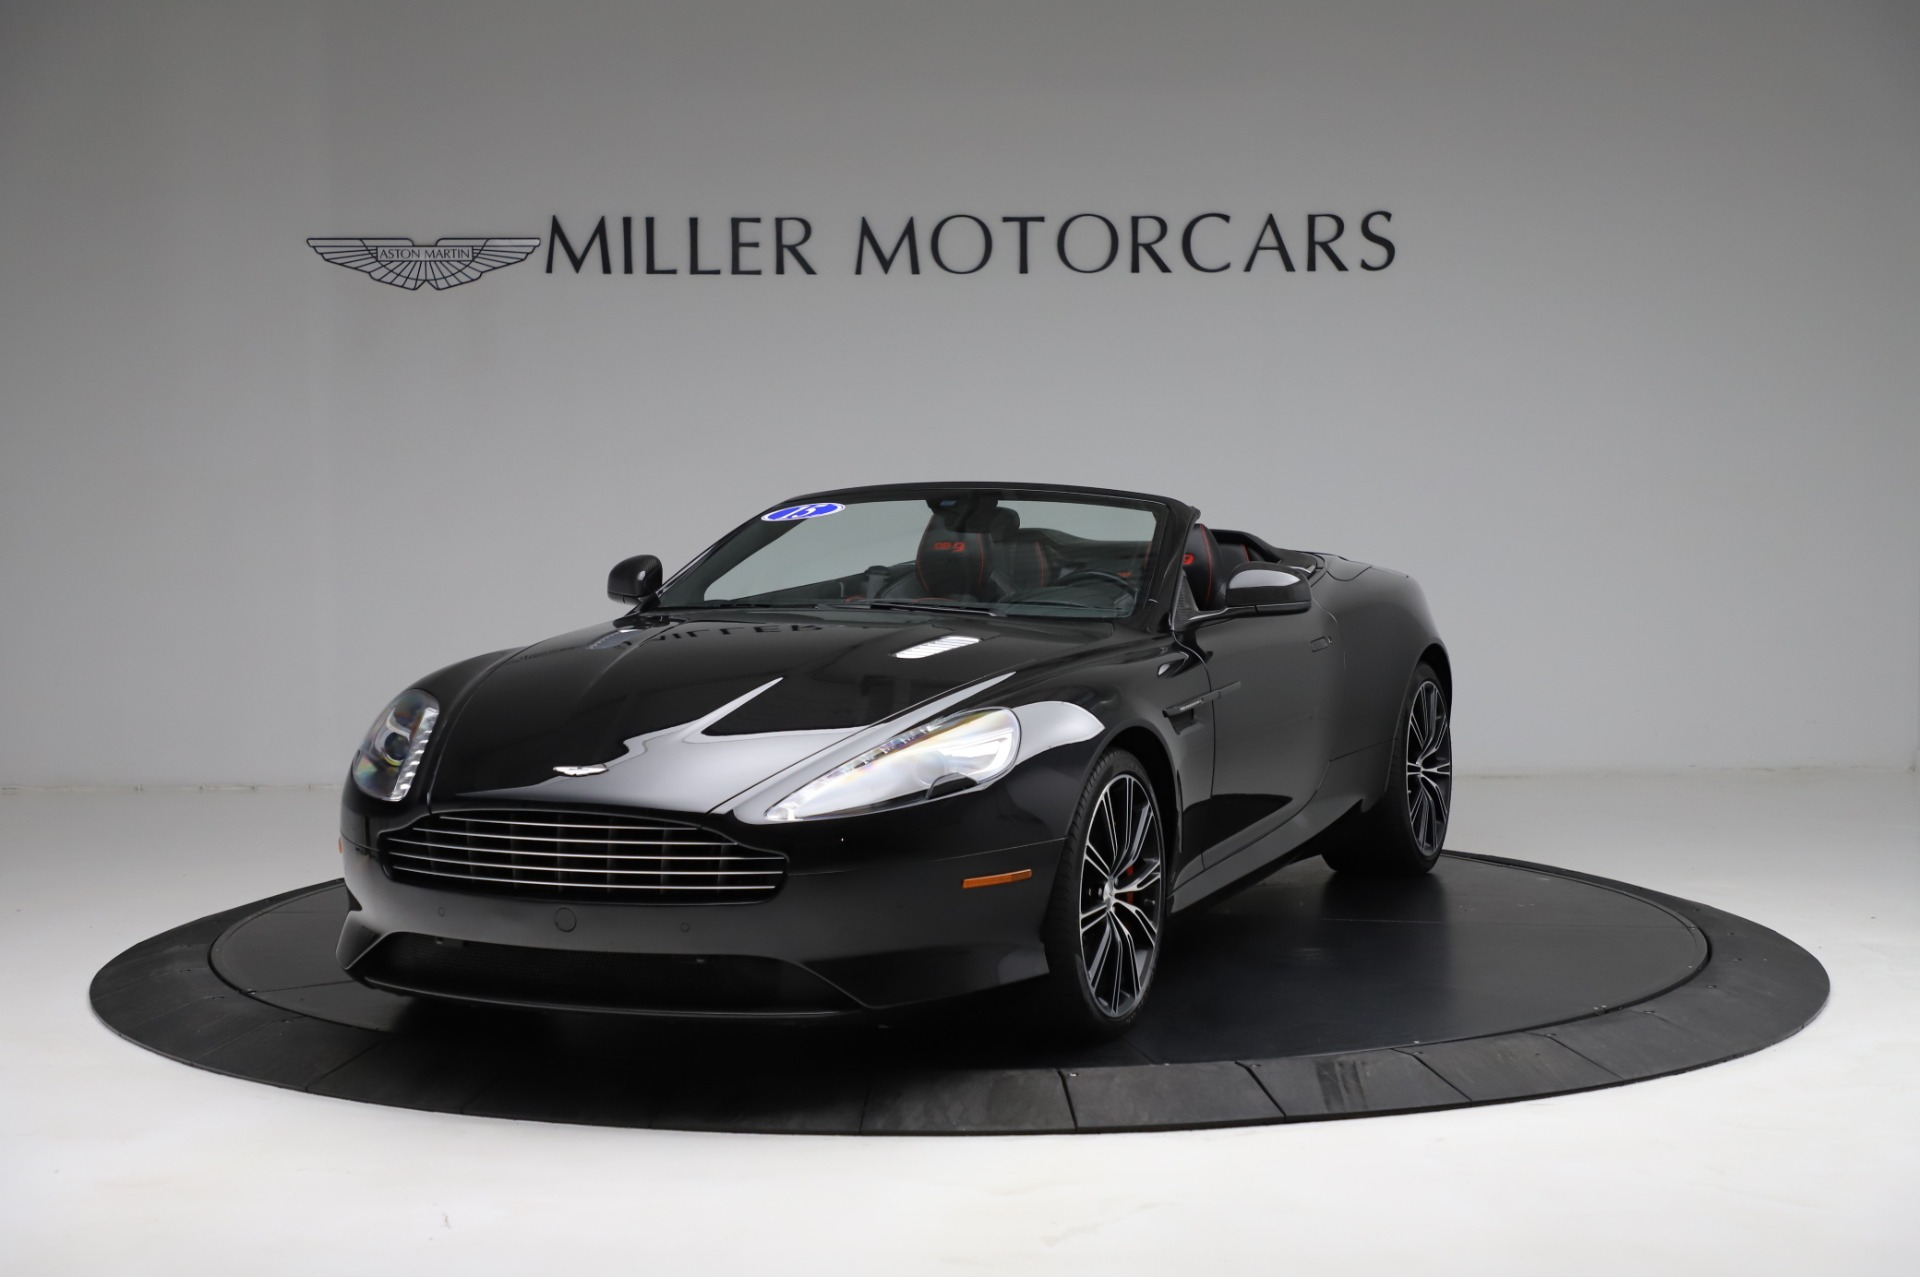 Used 2015 Aston Martin DB9 Carbon Edition Volante For Sale In Westport, CT 1919_p12